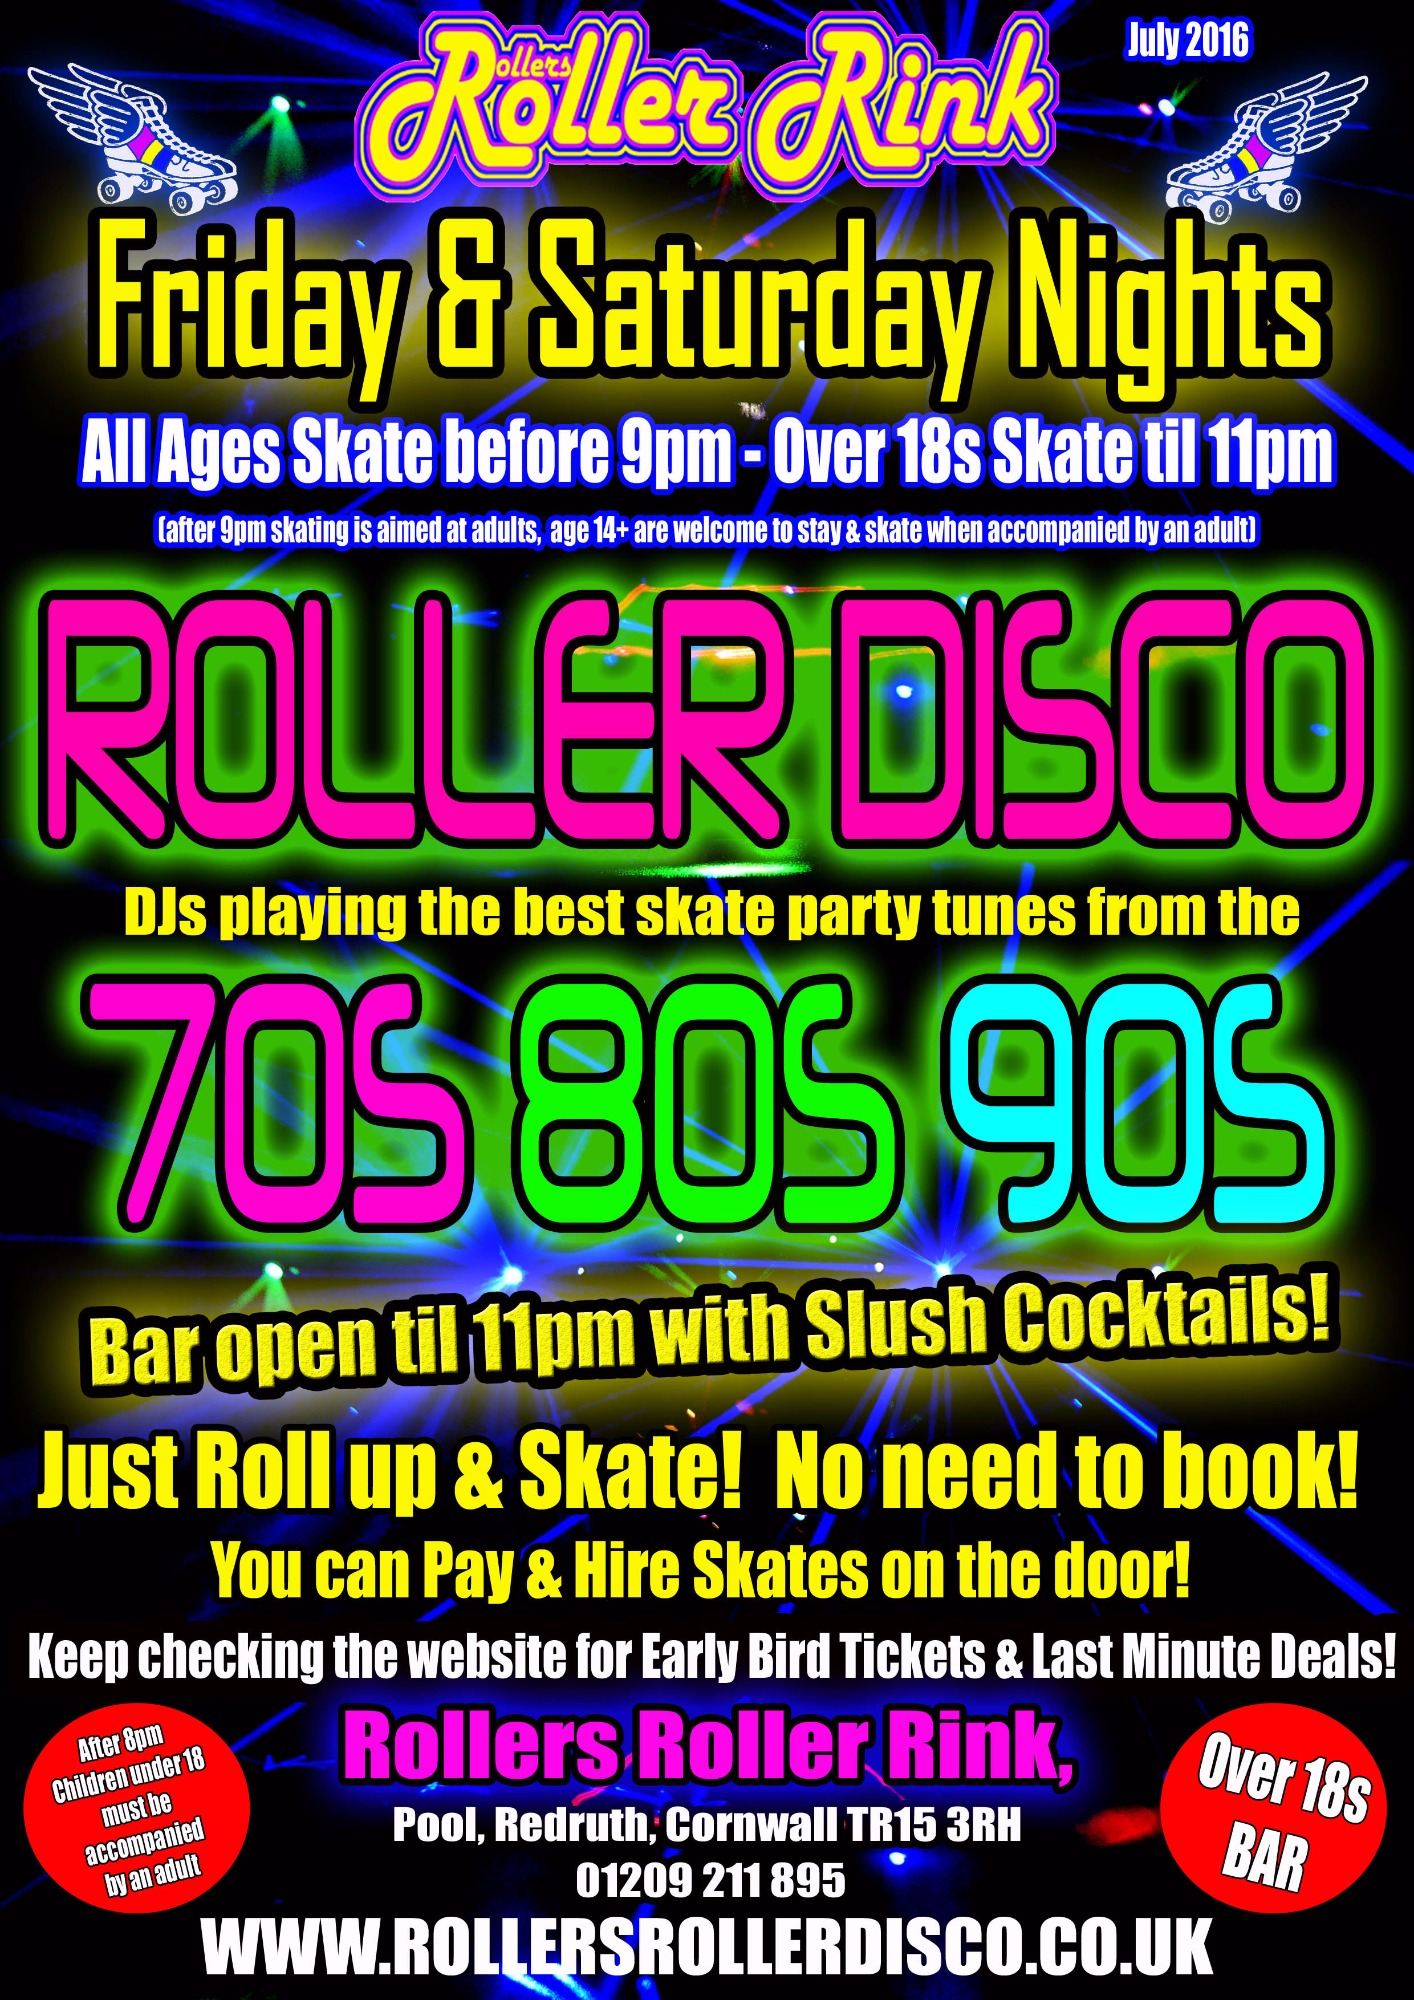 Friday and Saturday Nights Roller Disco 2016